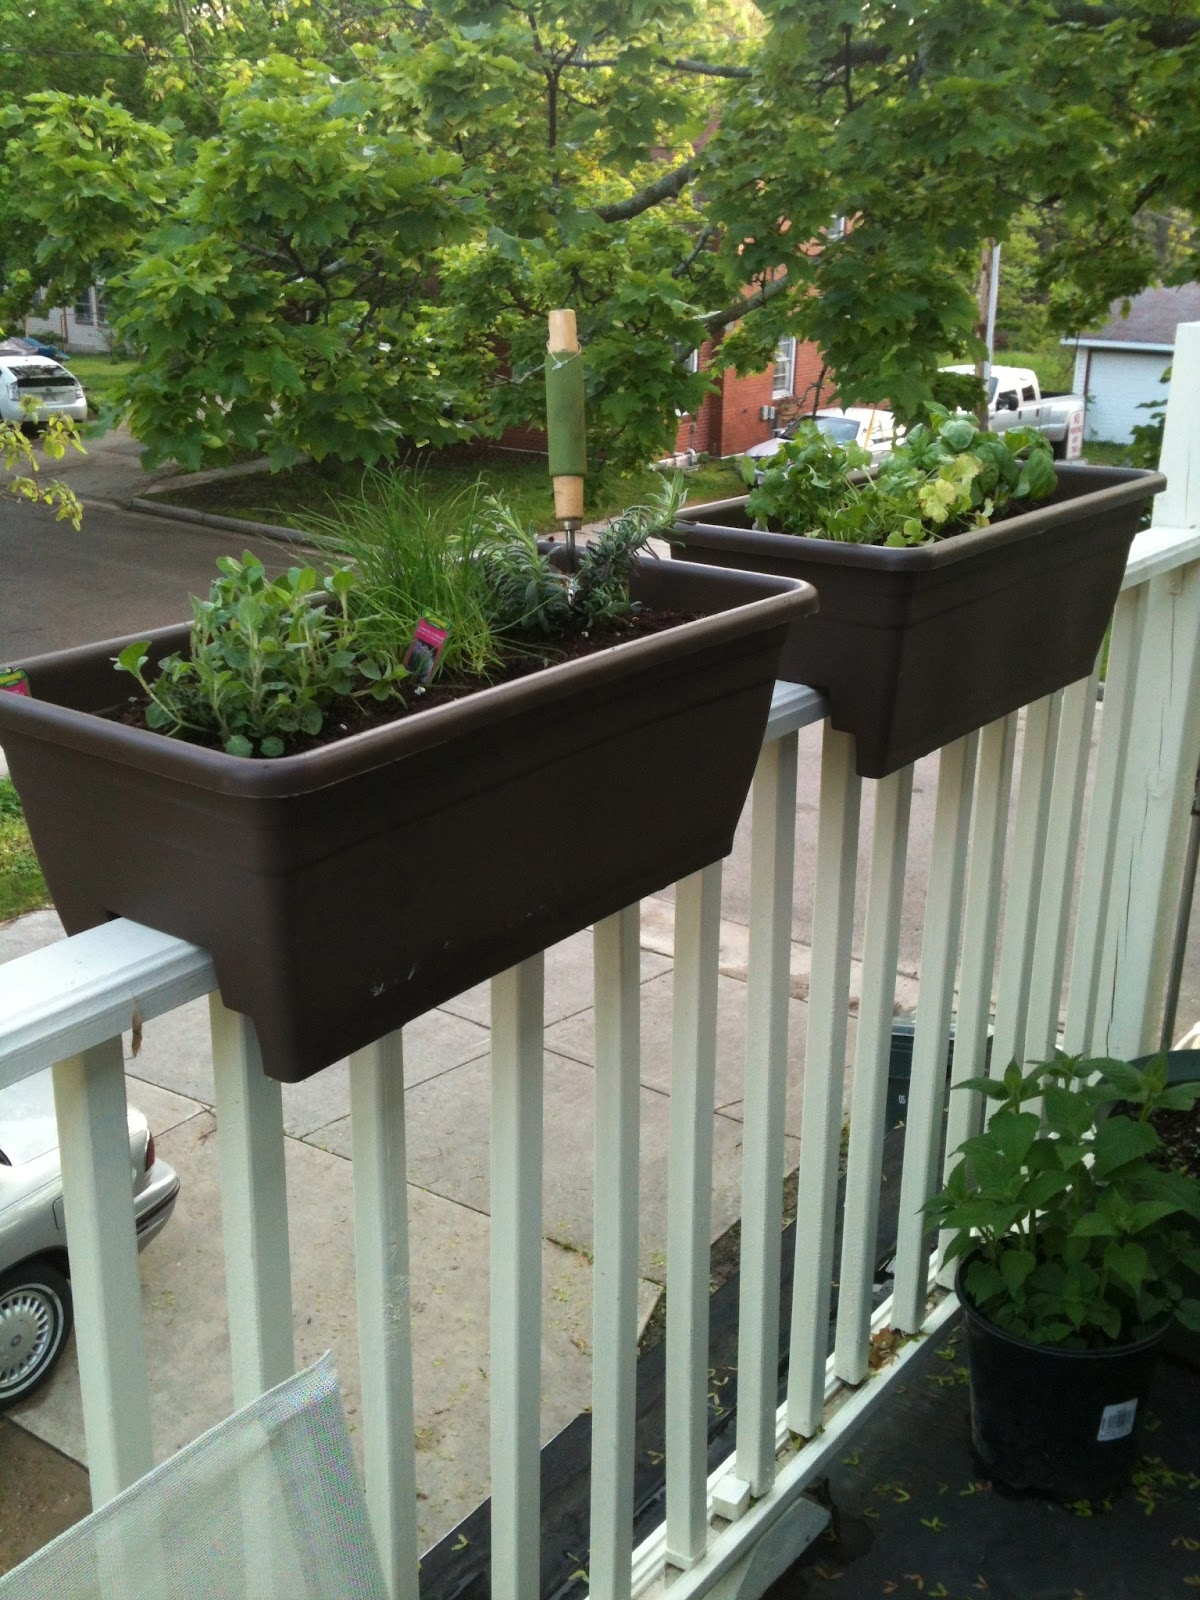 Home Depot Planter Boxes | Deck Rail Planters | Wooden Deck Planter Boxes